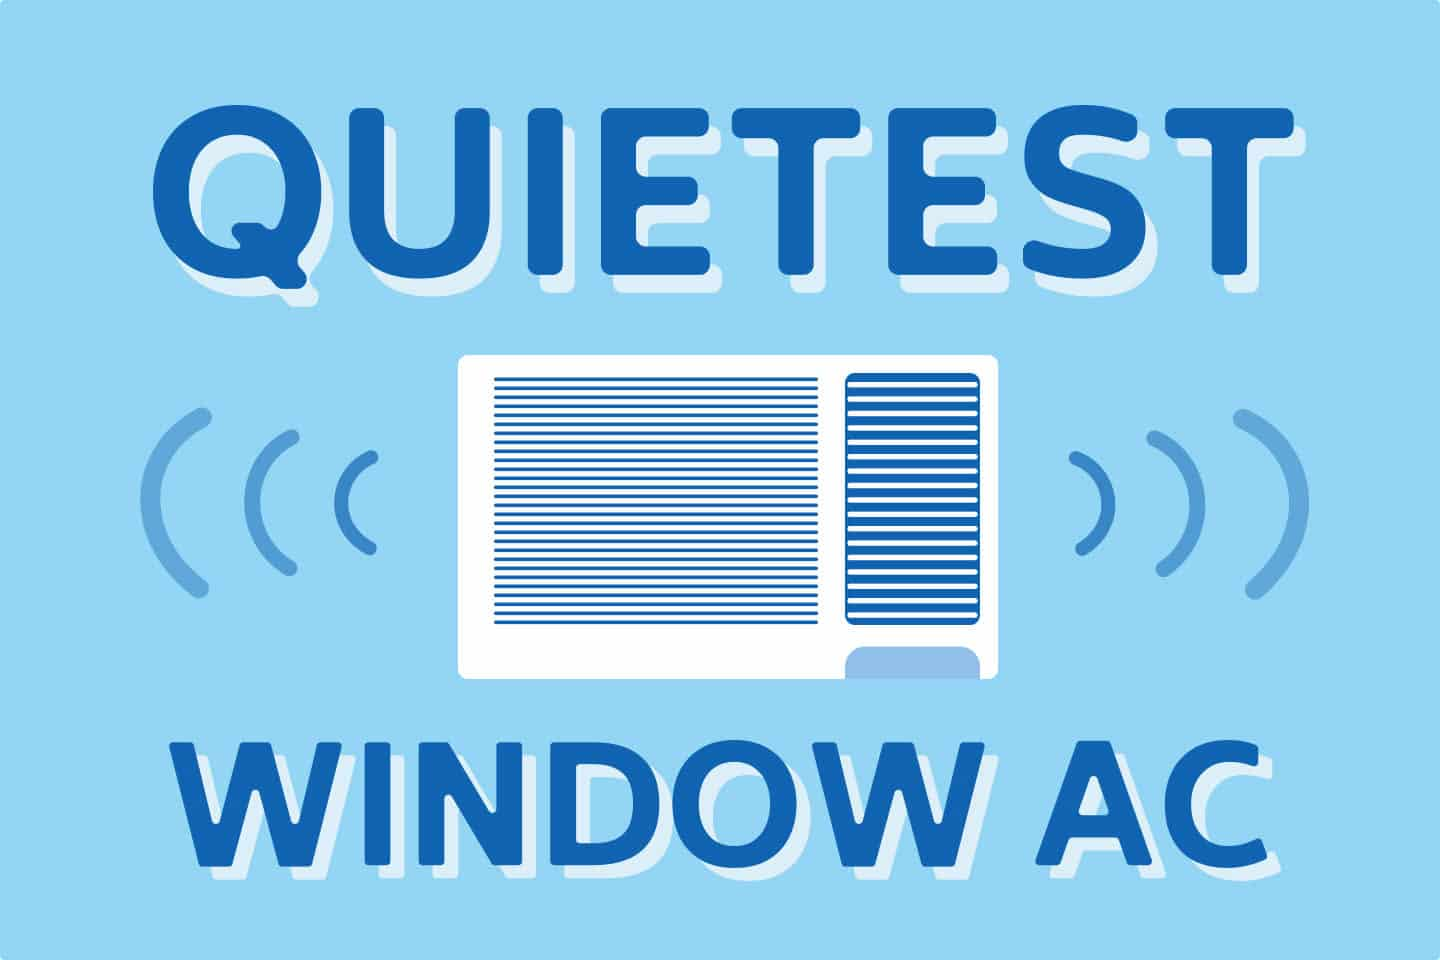 ❄️ Which are the Quietest Window Air Conditioners?